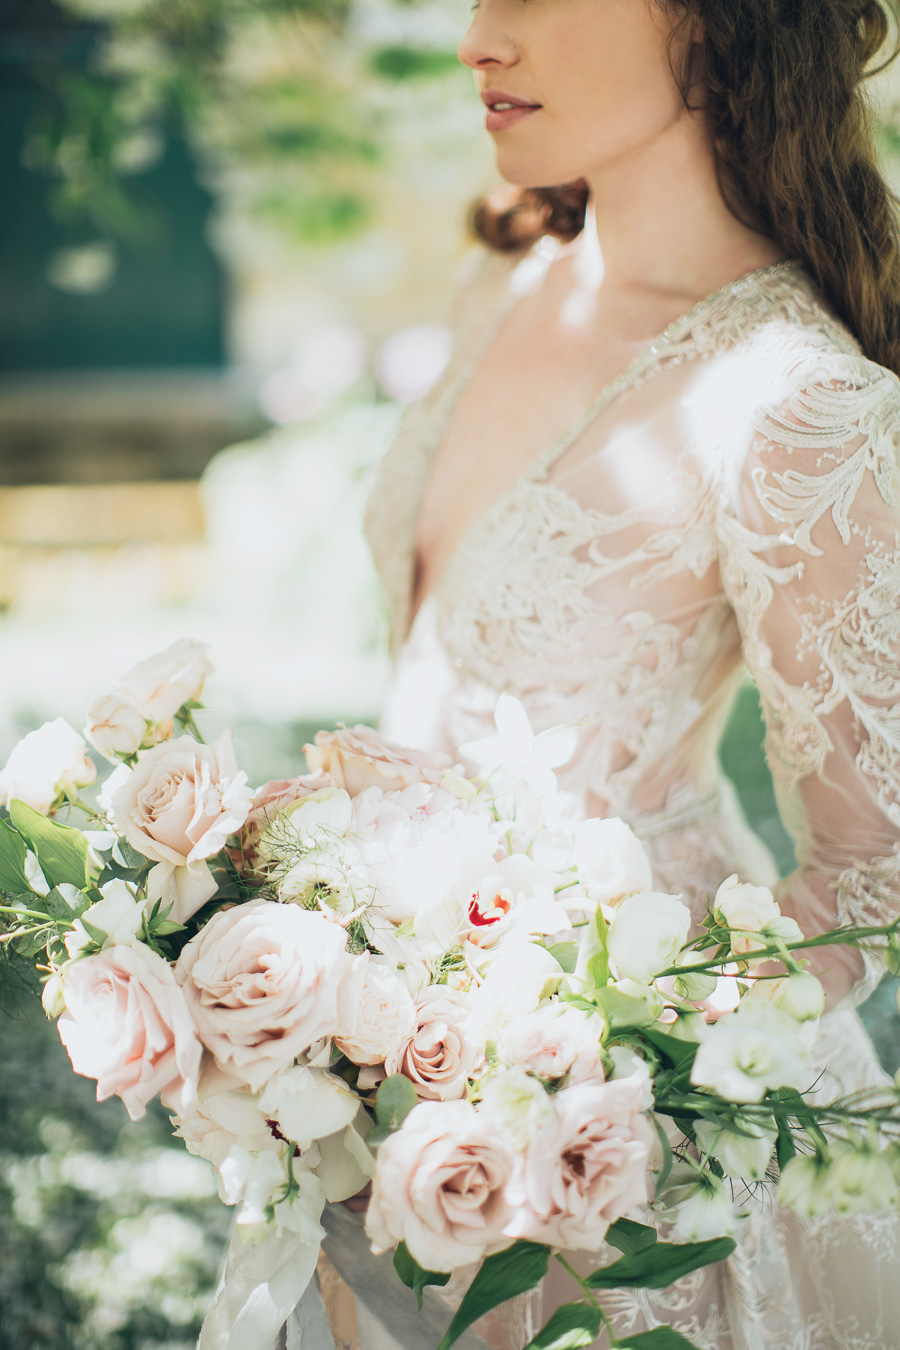 Belle Epoque wedding style inspiration with Wedhead, image credit Elina Sazonova Photography (14)